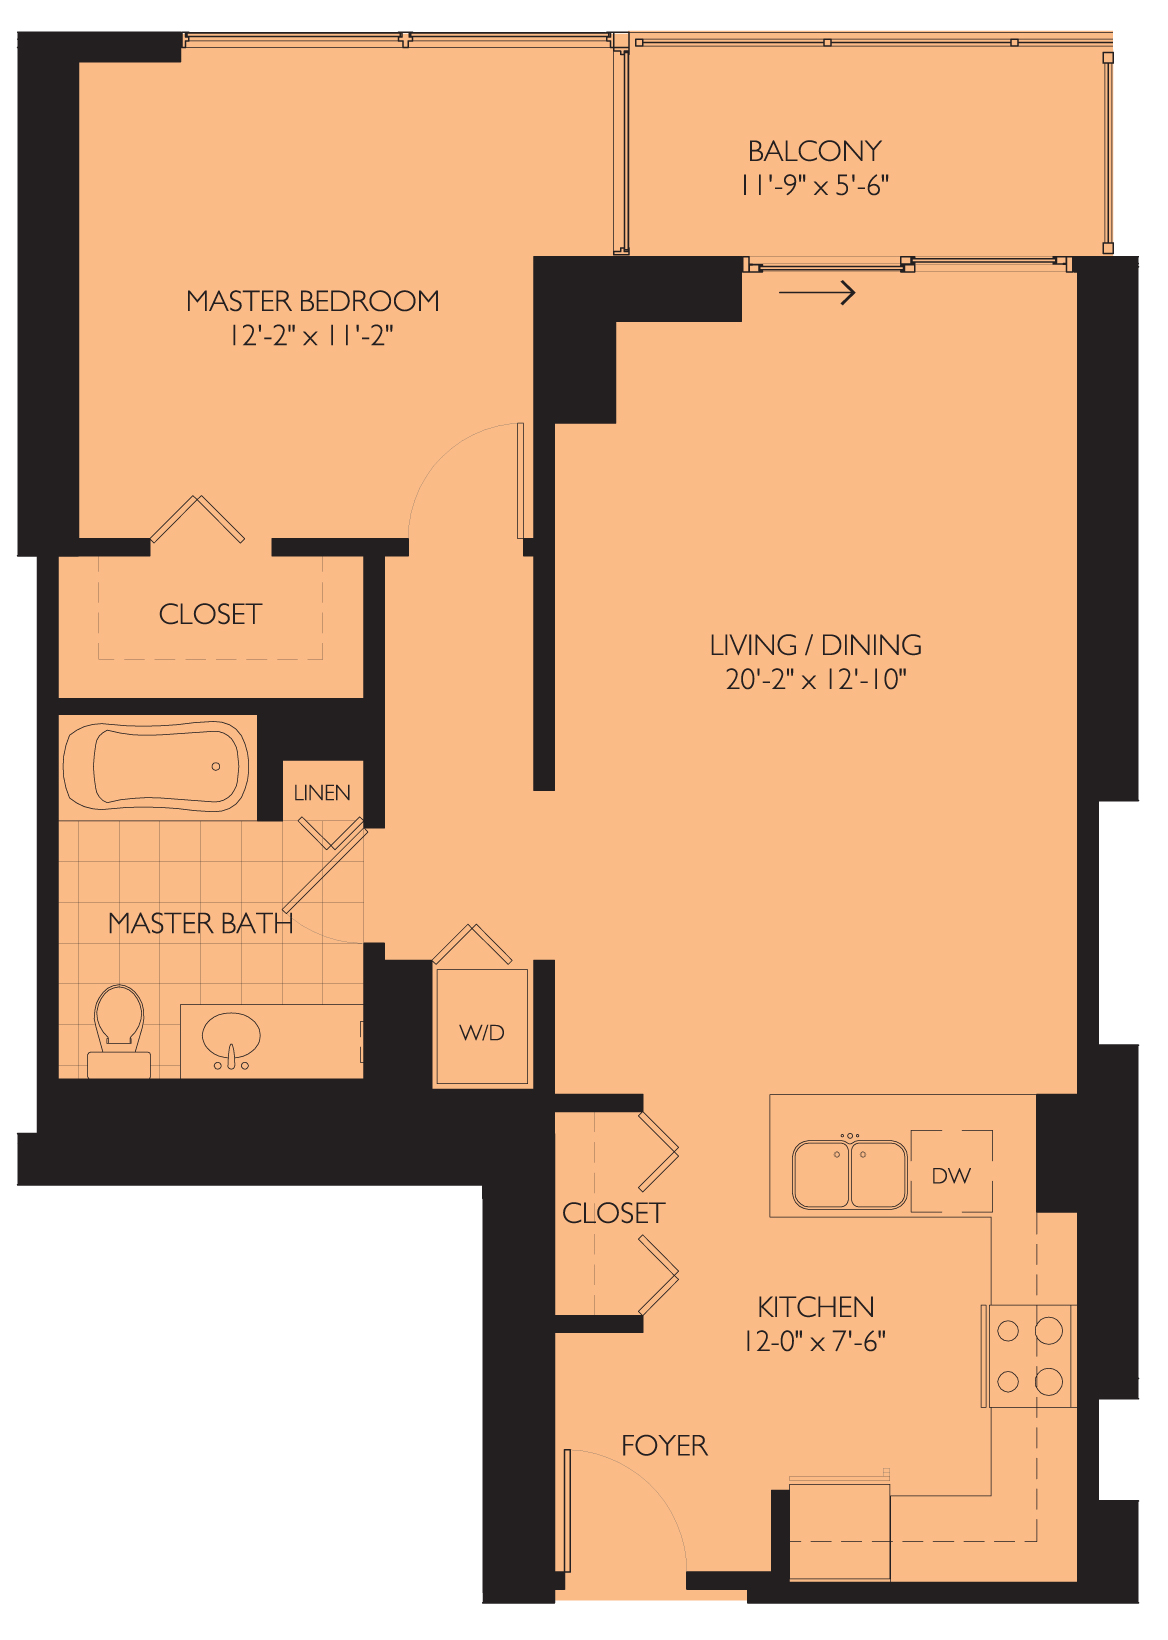 Rental smackdown: One-bedroom units at Burnham Pointe and Sky55